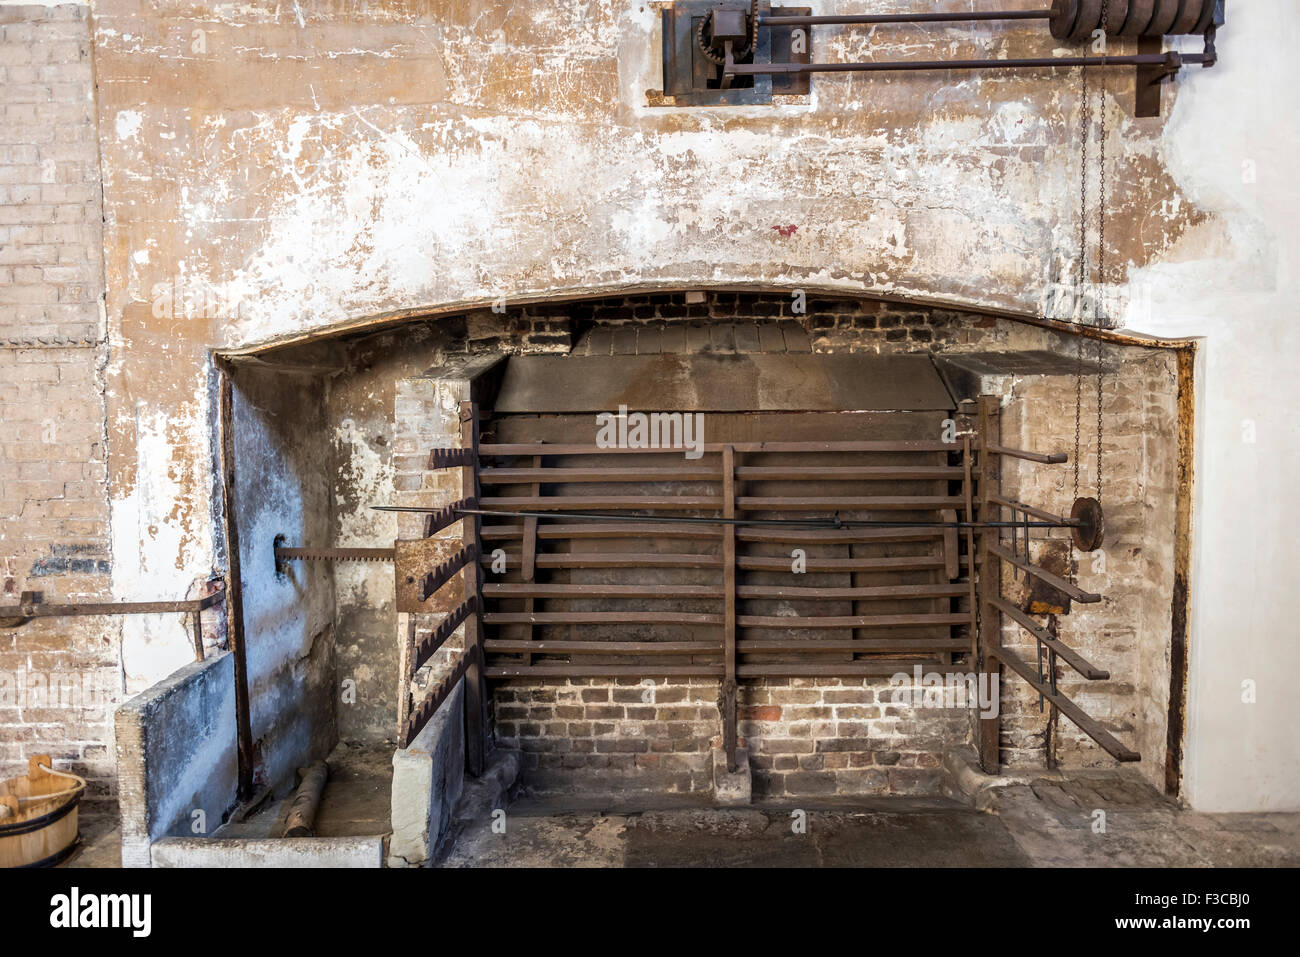 Fire place for roasting meat in the Royal Kitchens, Kew Gardens, London, UK - Stock Image